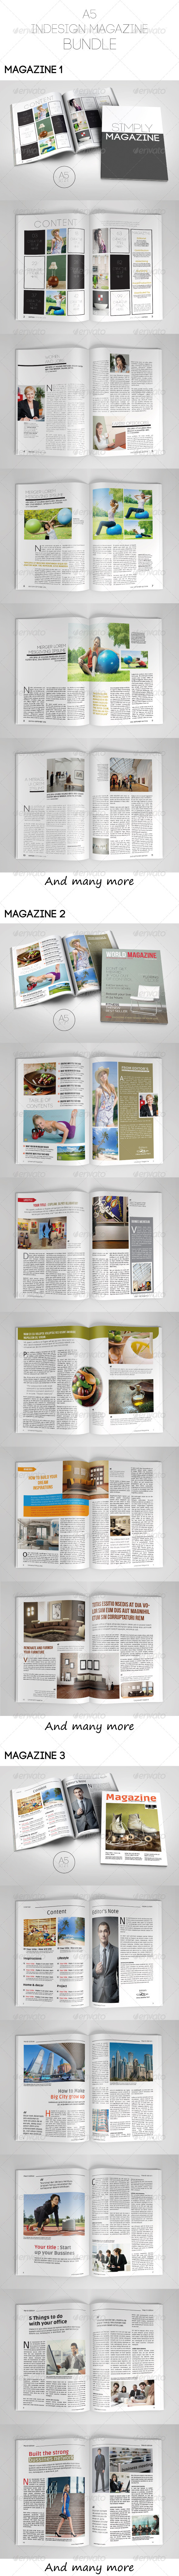 GraphicRiver A5 Magazine Bundle 7864306